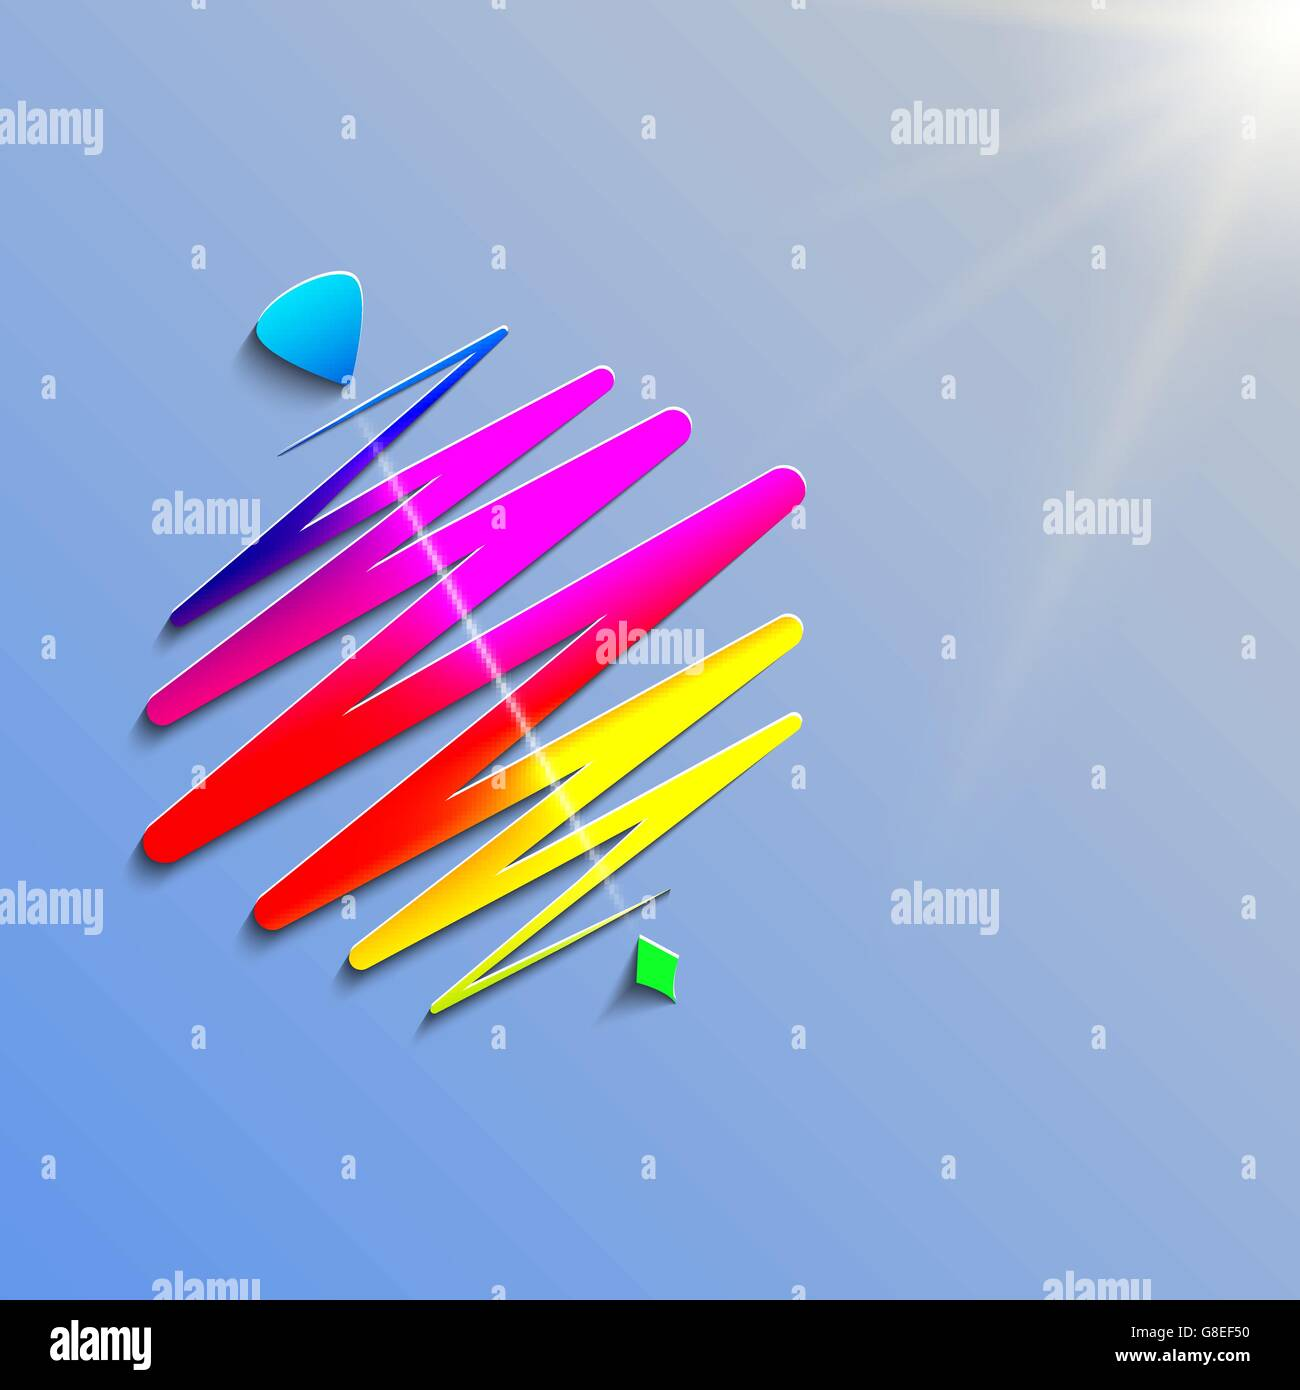 modern color whirligig, on an abstract background. Fast whirlabout. Luminous peg-top. Vector illustration EPS10 - Stock Image